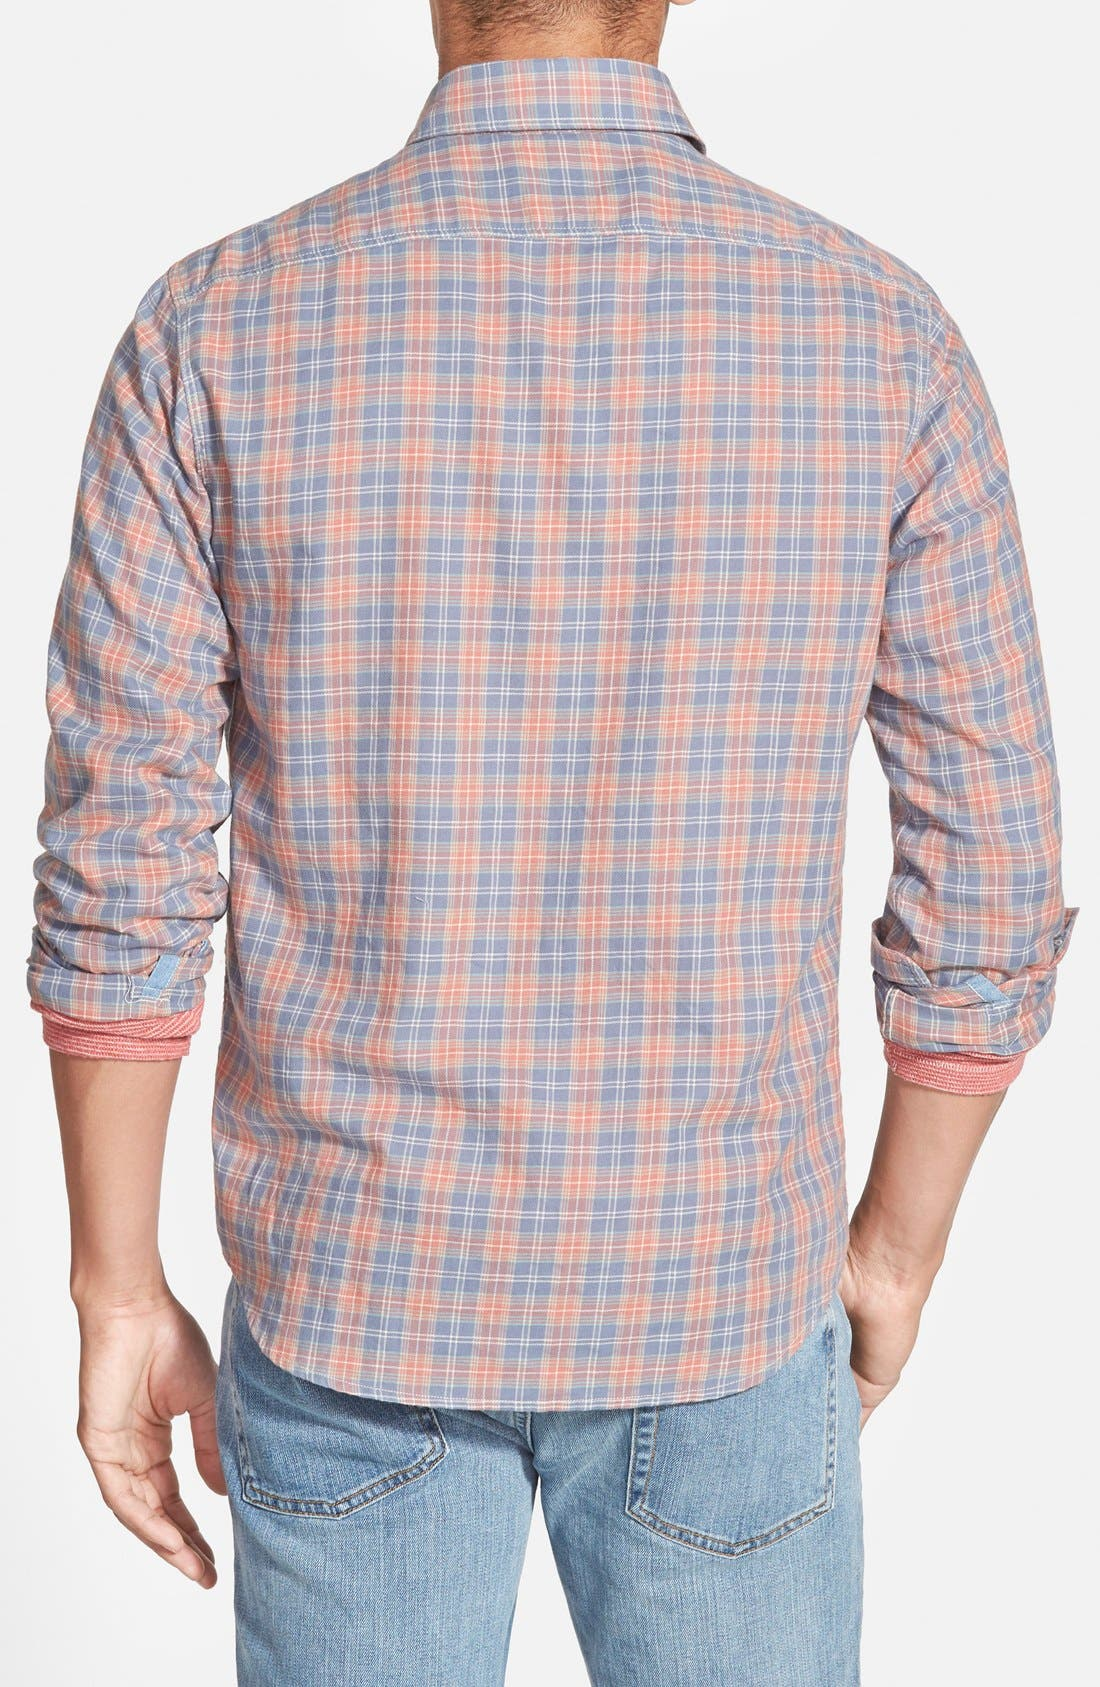 'Ventura' Trim Fit Washed Plaid Sport Shirt,                             Alternate thumbnail 3, color,                             600